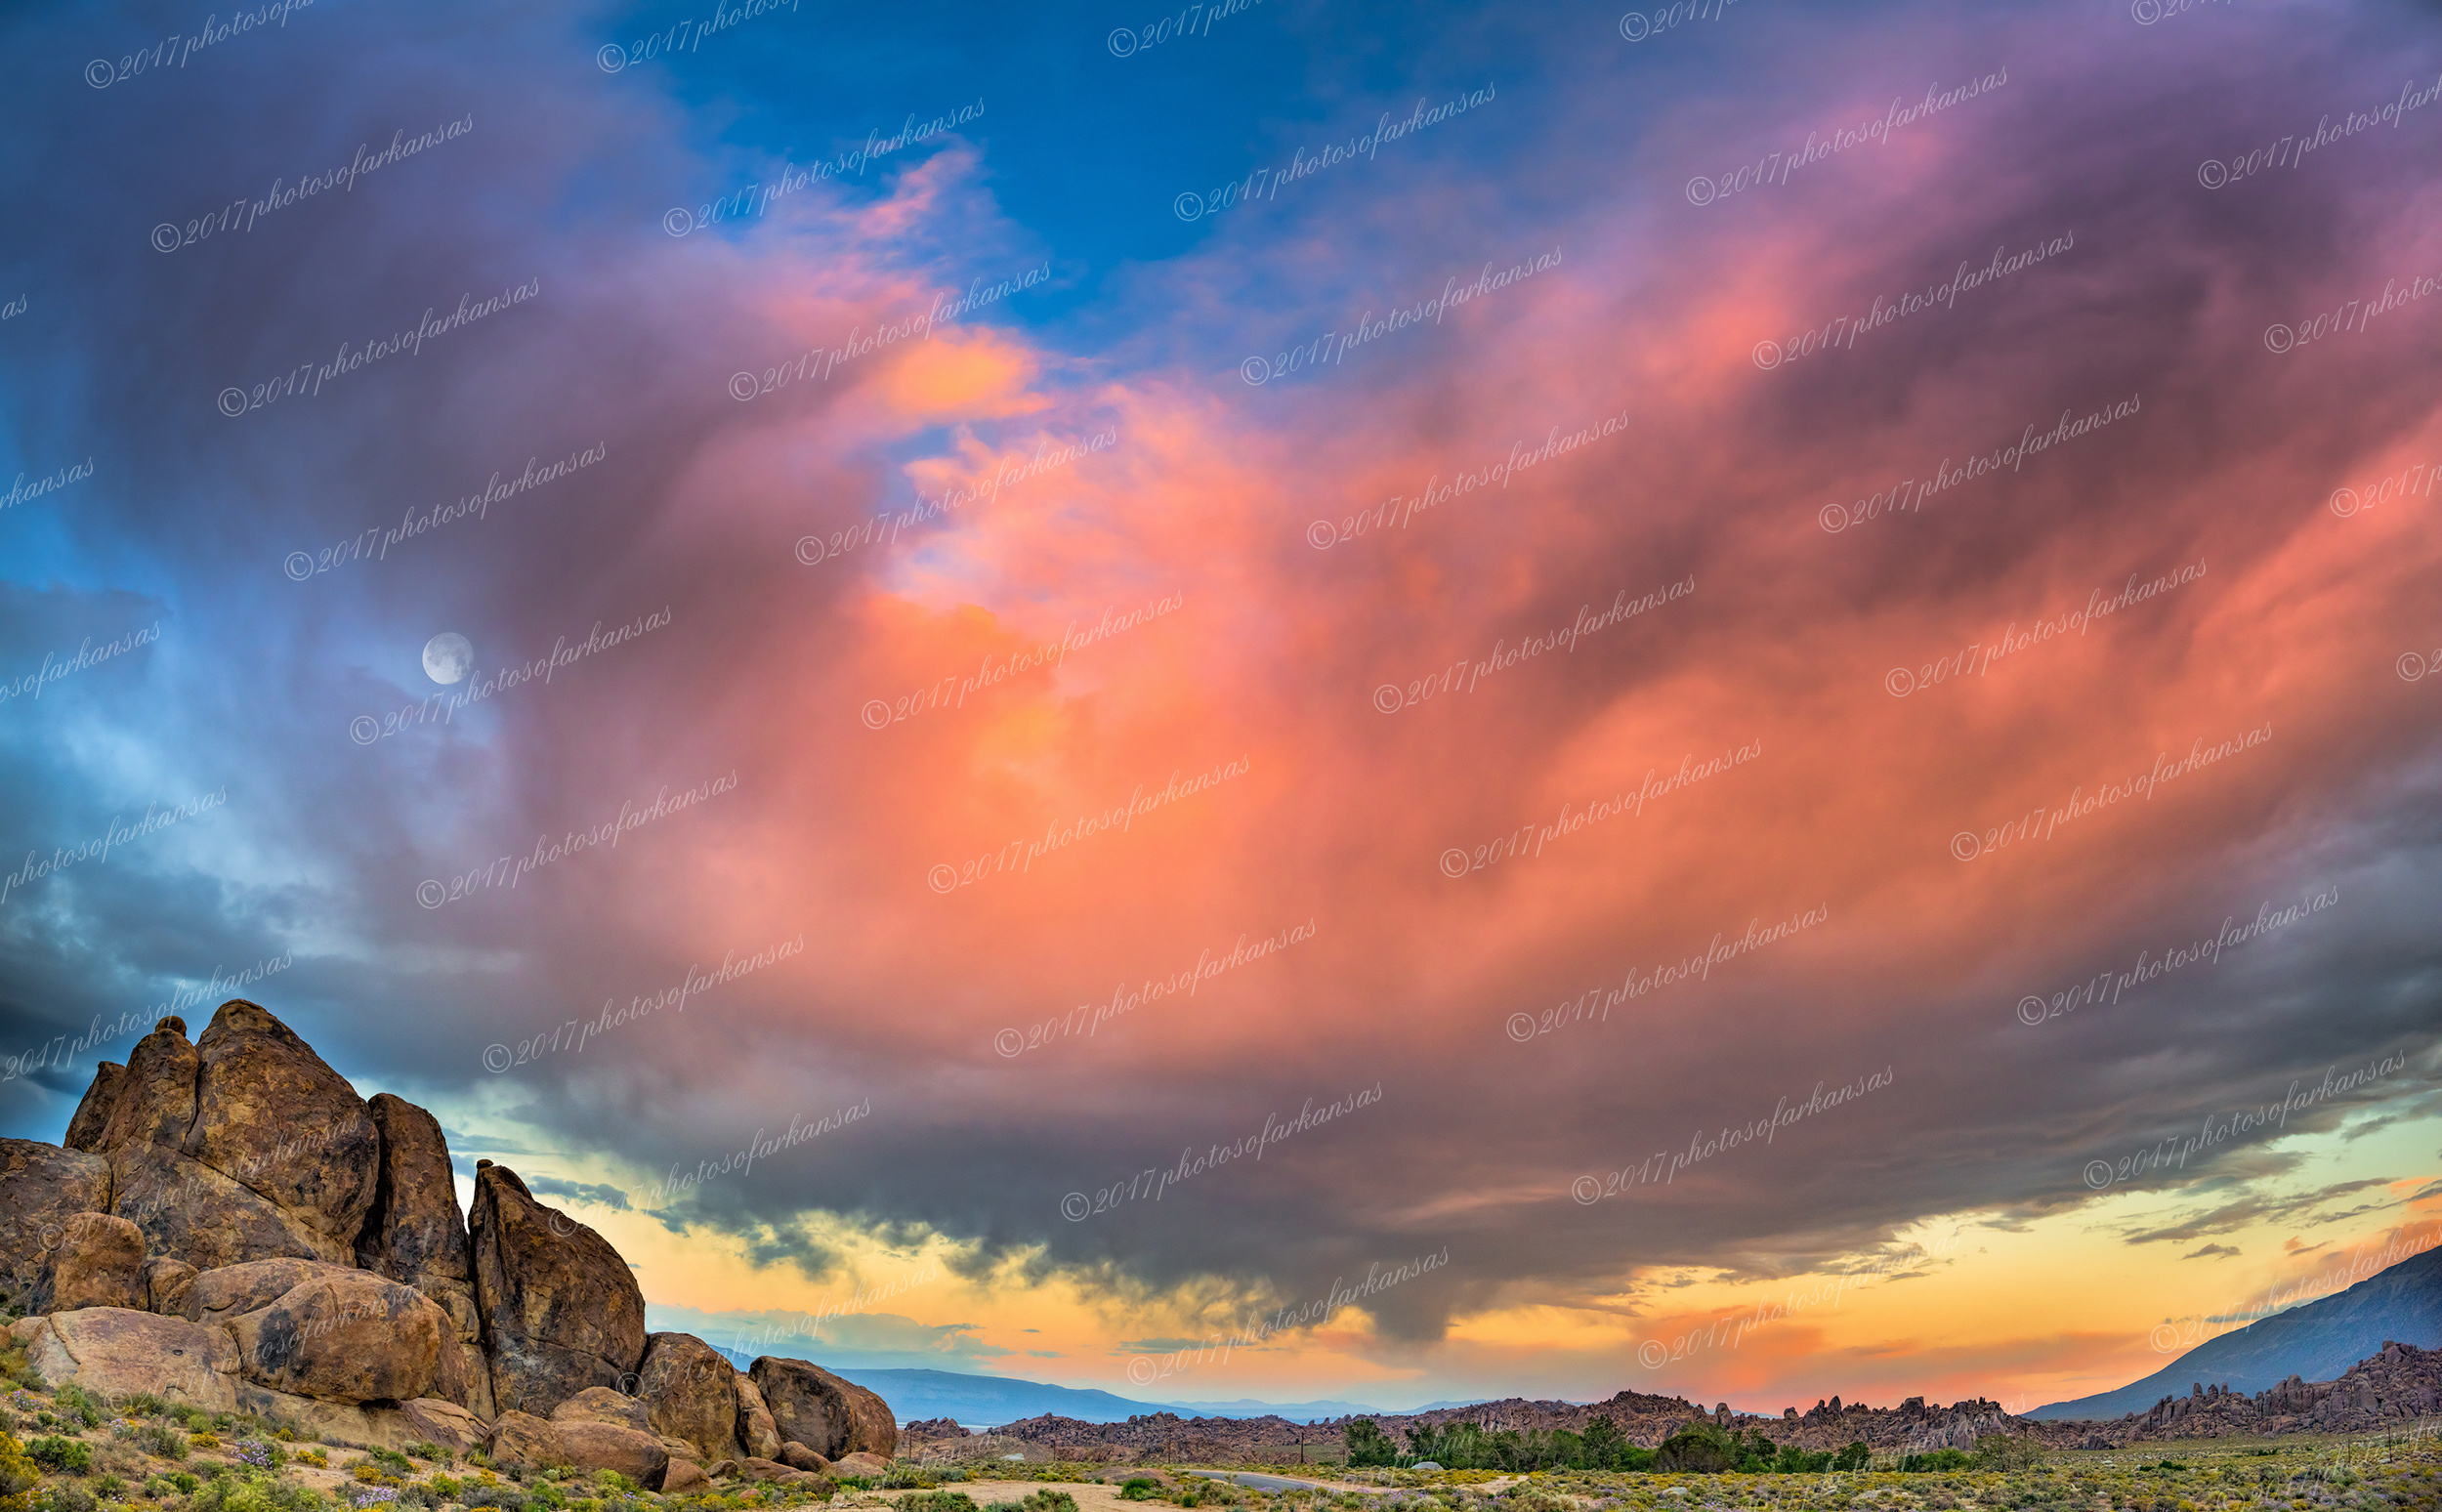 Sunset and moonrise in the Alabama Hills.